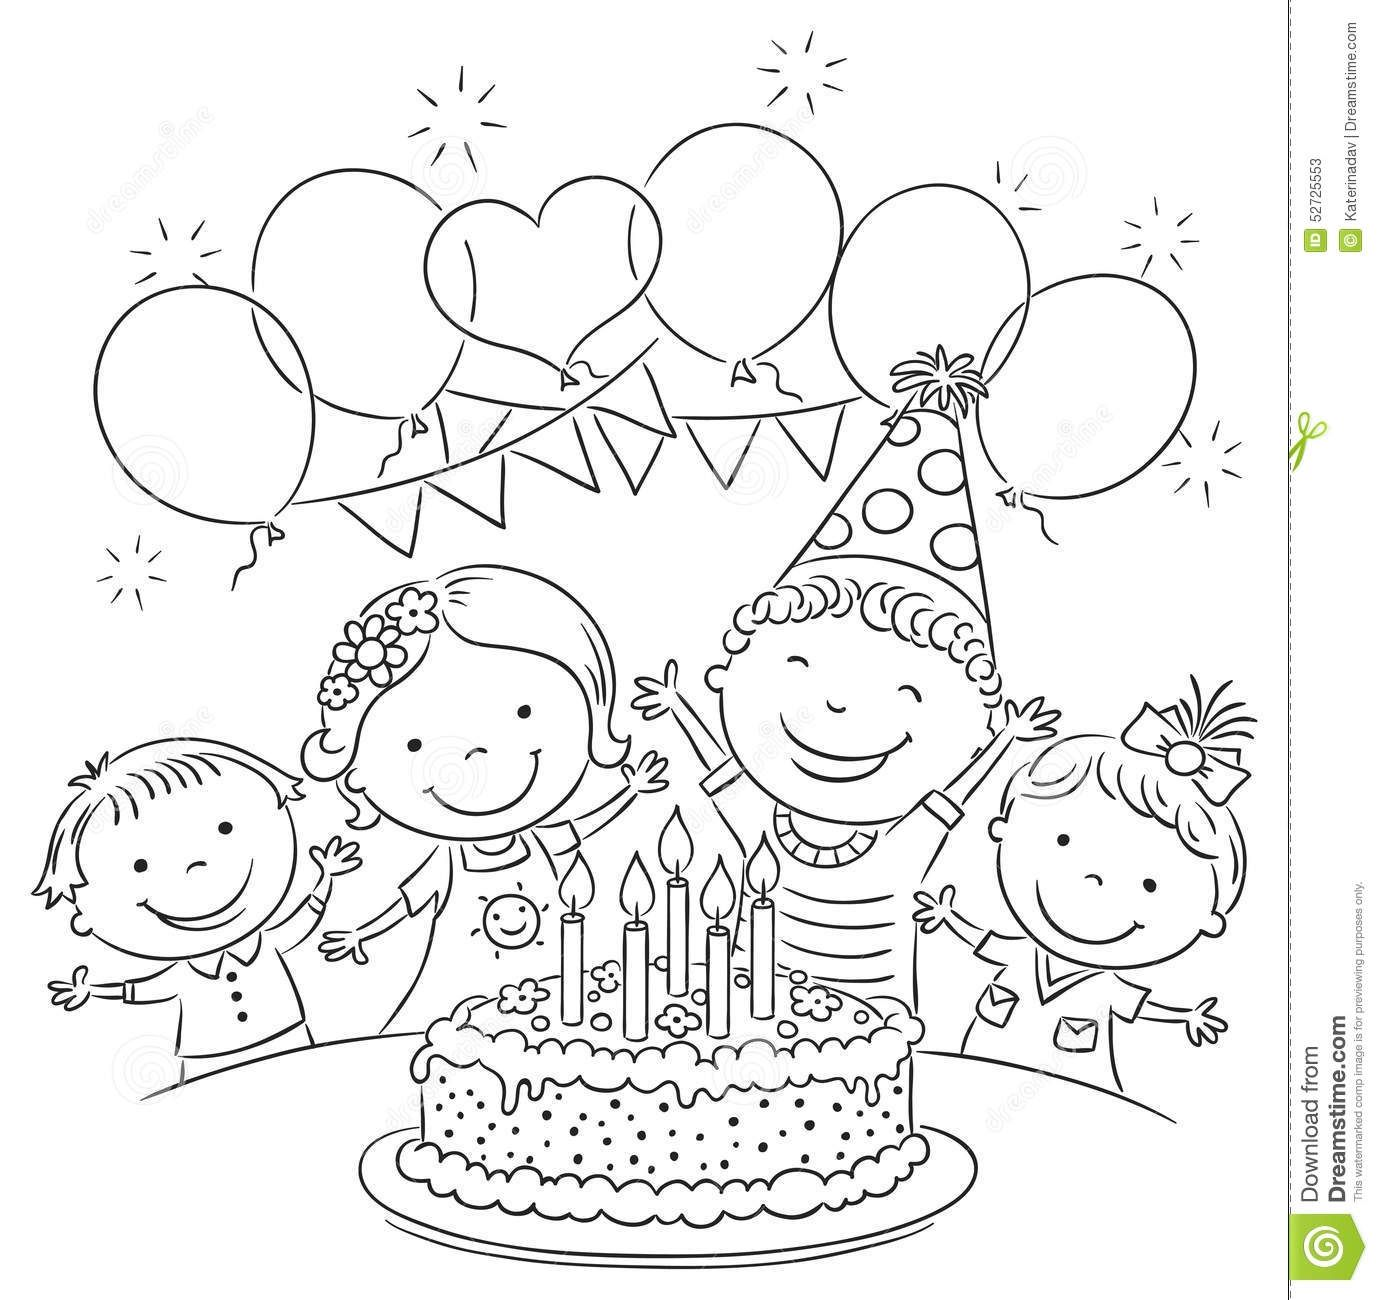 Kids Birthday Party Outline | Jesus coloring pages, Kids birthday party, Christmas gift coloring ...